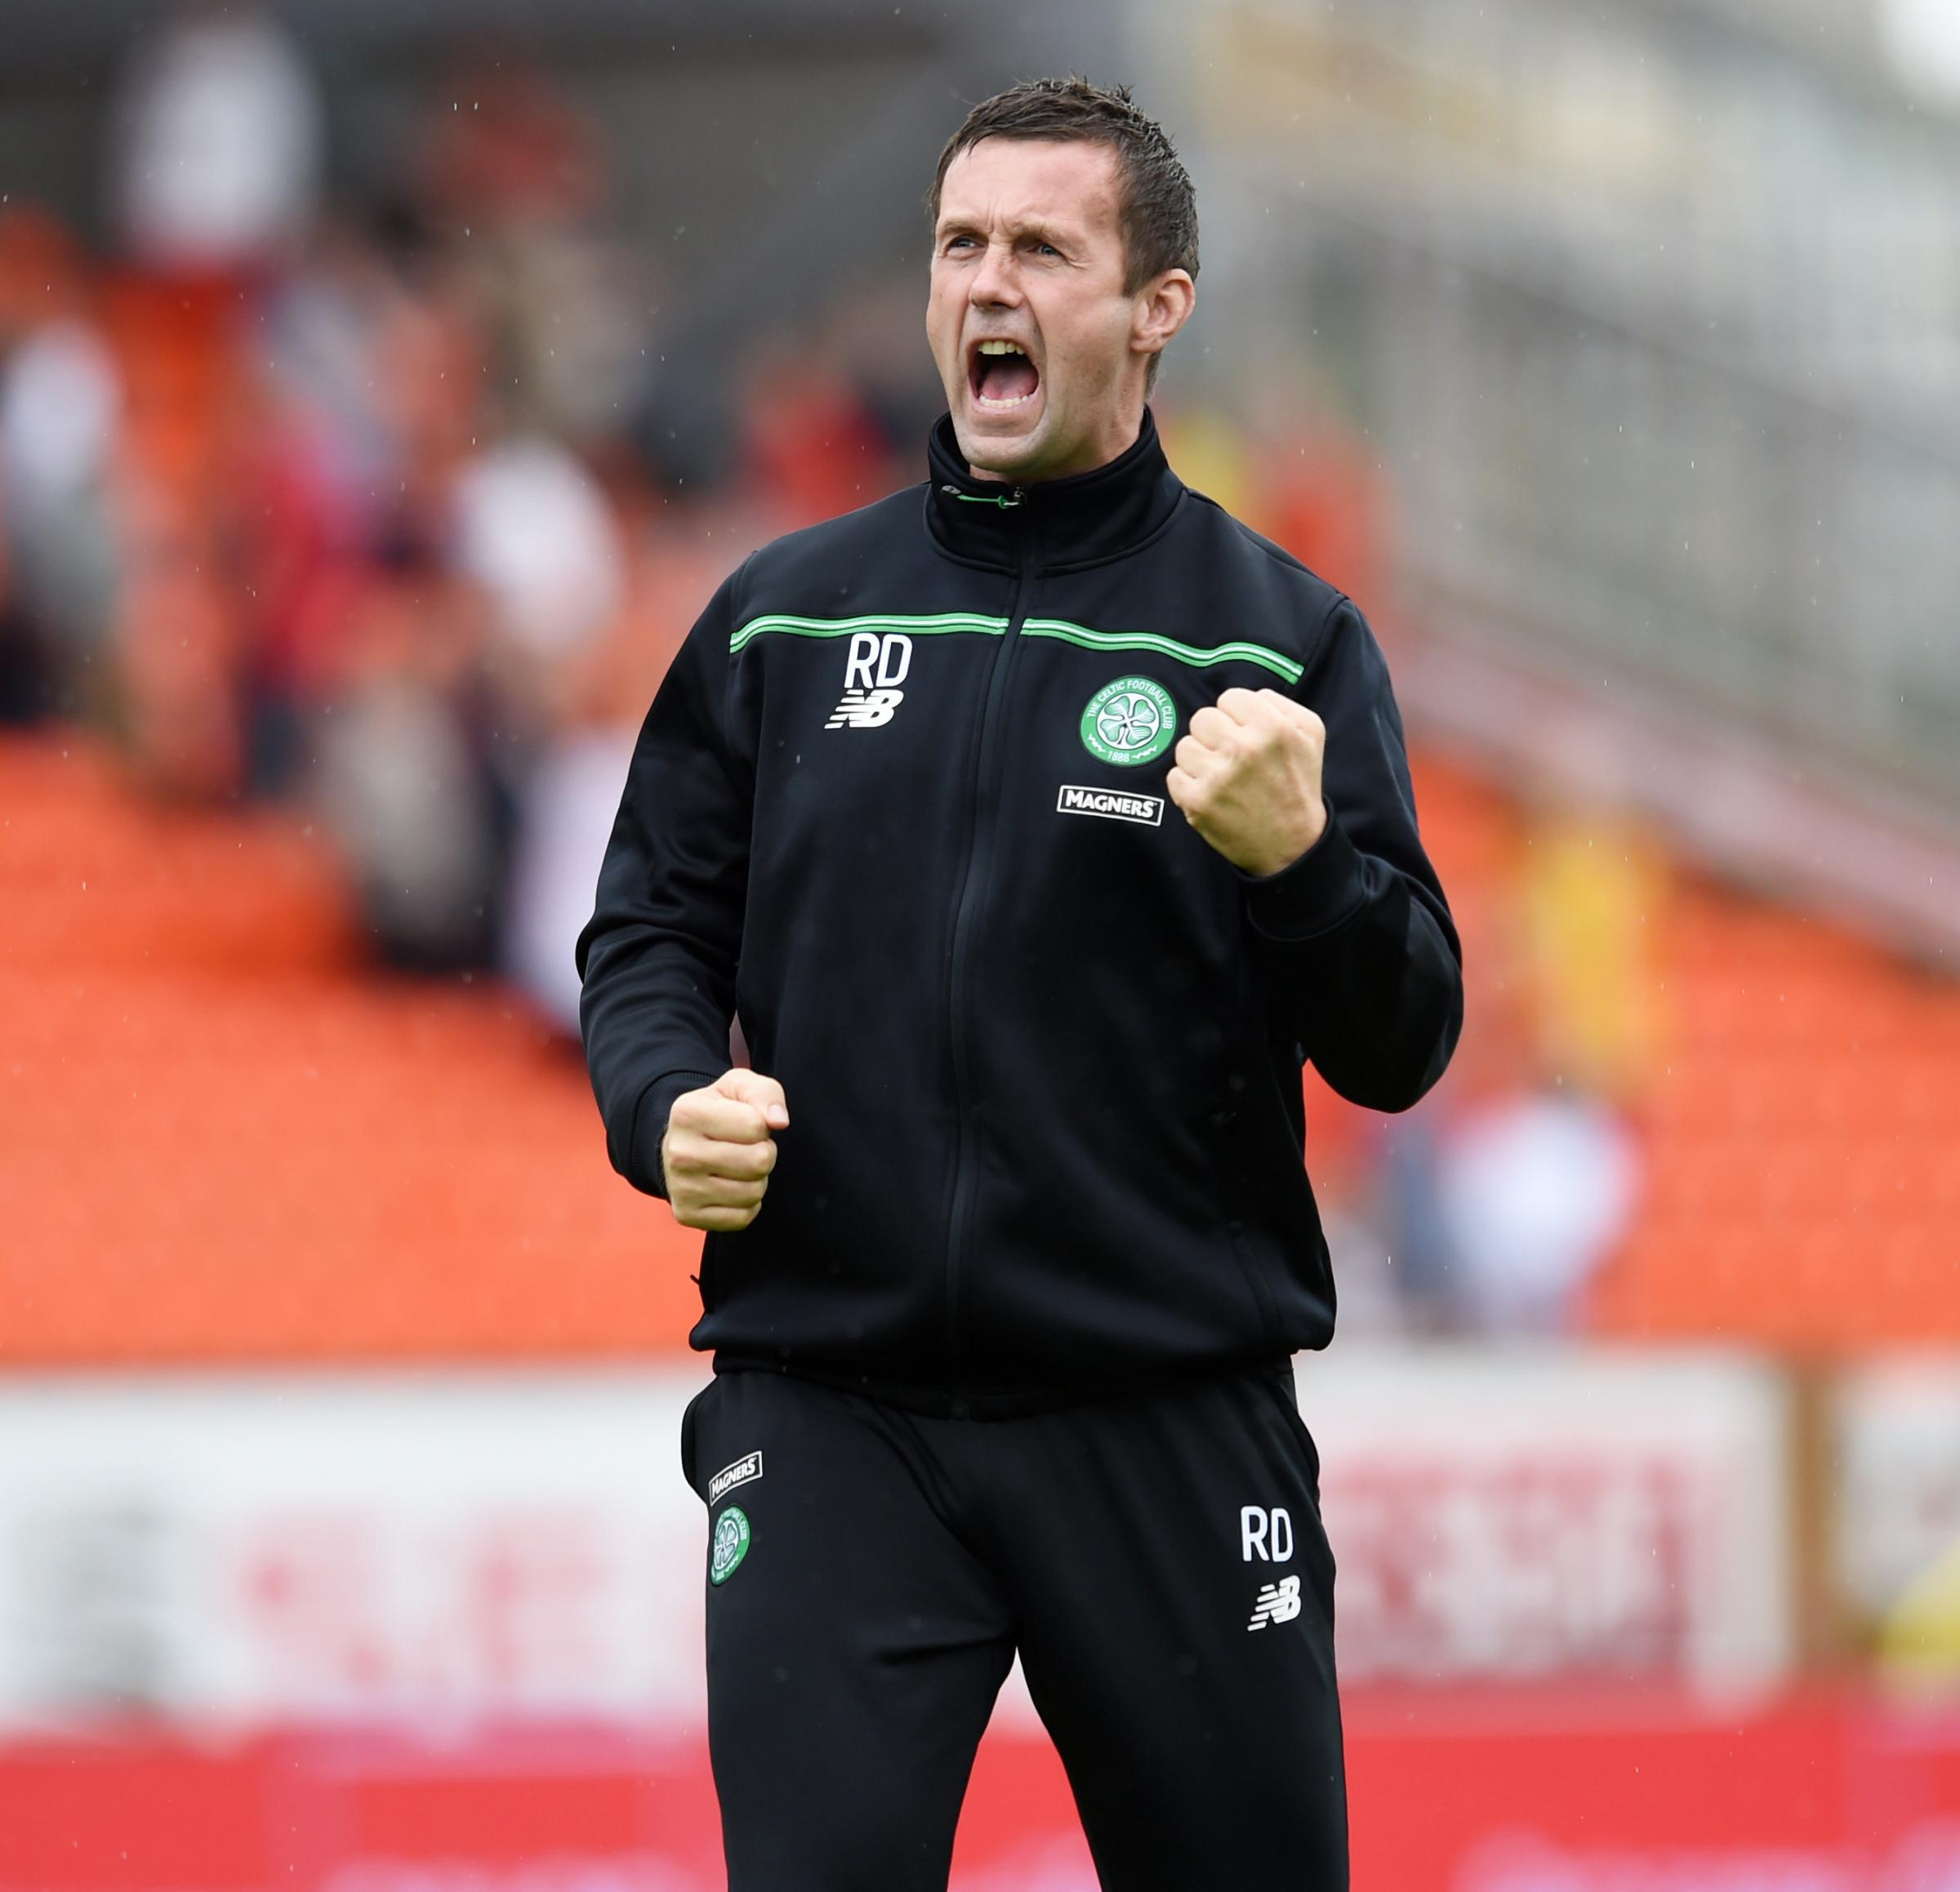 EXCLUSIVE: Ronny Deila on Pedro Caixinha, his O** F*** heartbreak and rating his time at Celtic